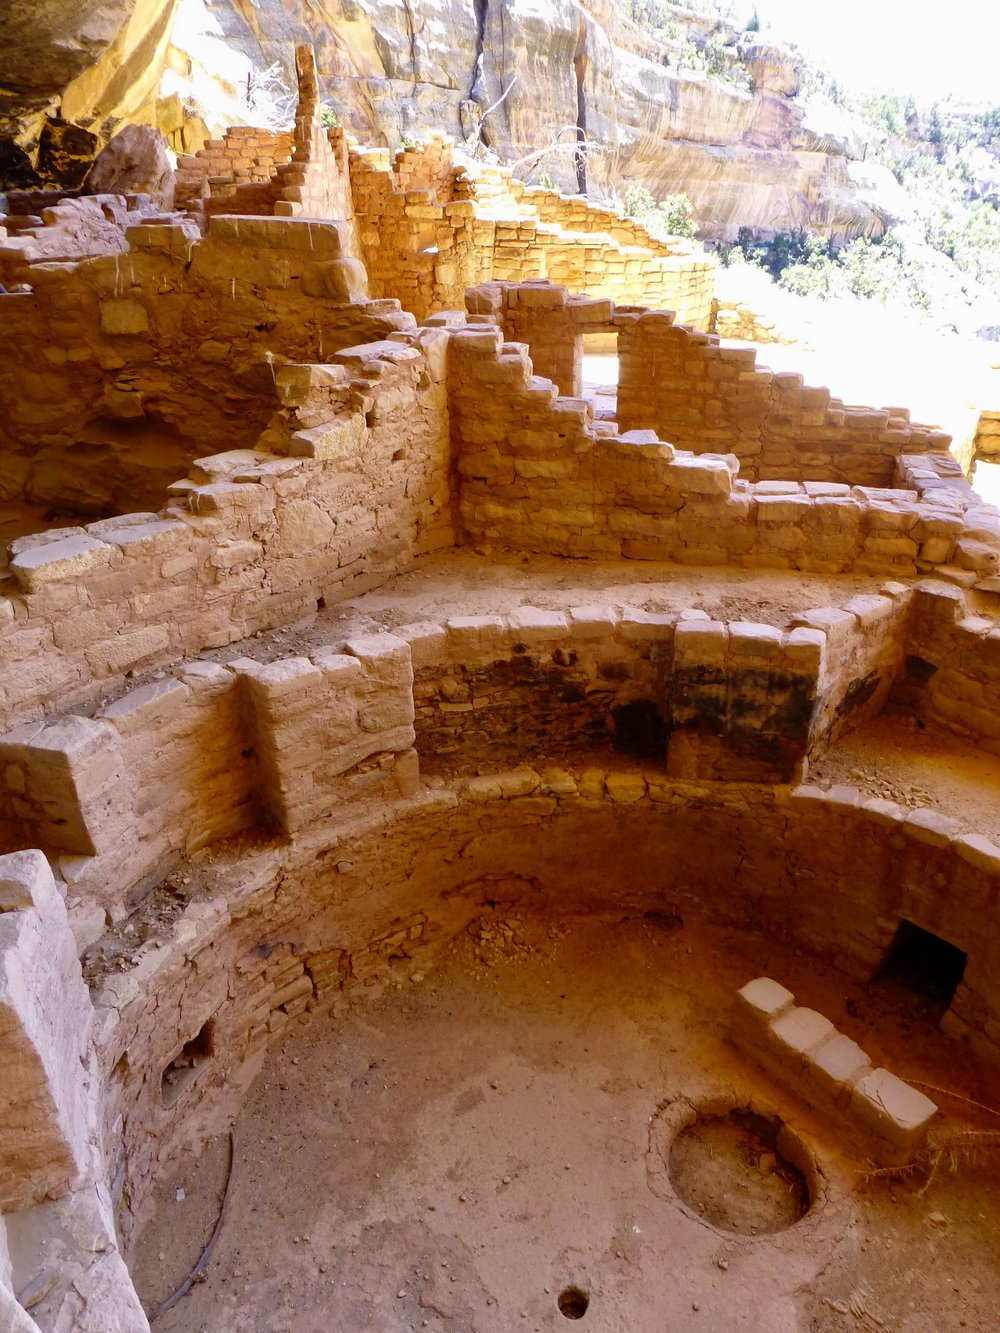 One of the Long House kivas